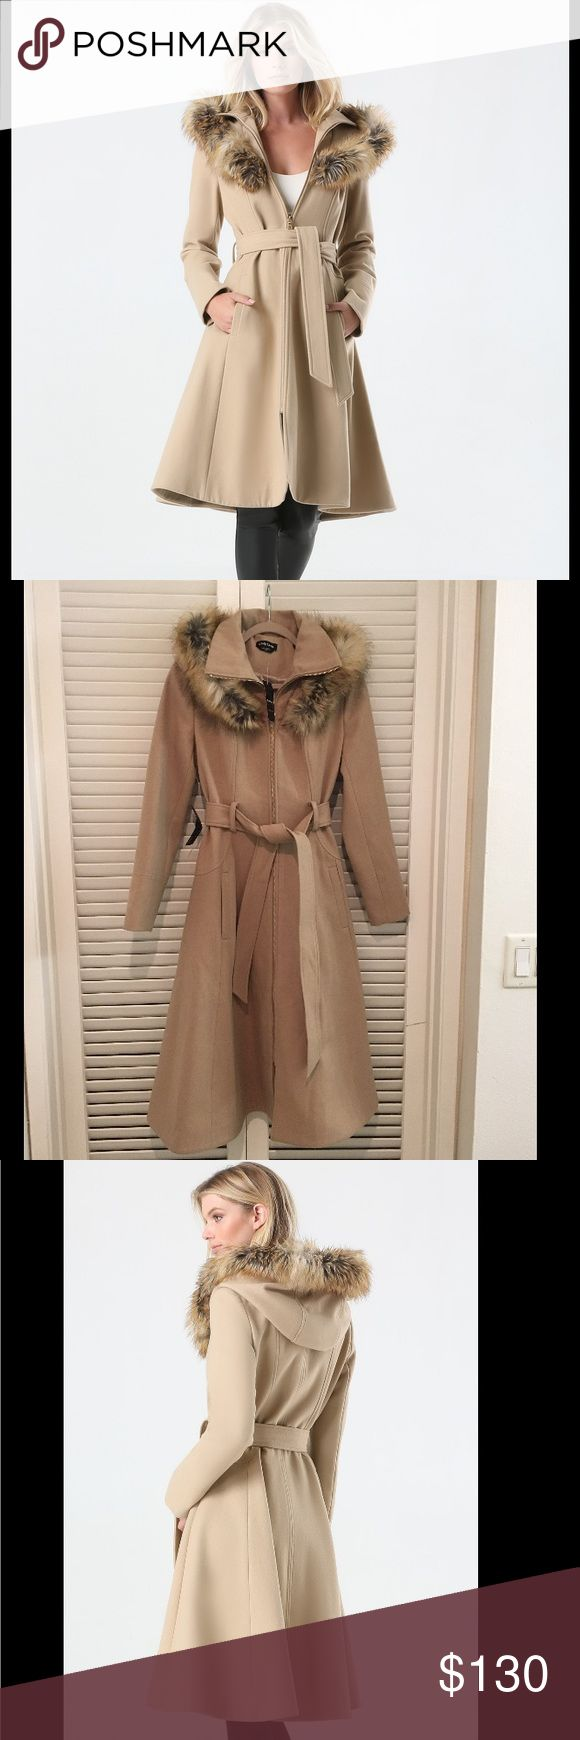 """Bebe maxi coat ❄️❄️❄️ NWT-Impeccable tan wool-blend coat in a right-now midi length with exceptionally flawless tailoring and topstitching, sleek welt pockets and a deep stand collar with faux fur-trimmed hood. Shaping seams, flared hem and detachable tie belt keep the look flattering. Front goldtone zip closure. Fully lined. 60% Wool, 26% polyester, 11% viscose, 2% acrylic, 1% nylon Dry clean Center back to hem: 44"""" (112 cm) bebe Jackets & Coats"""